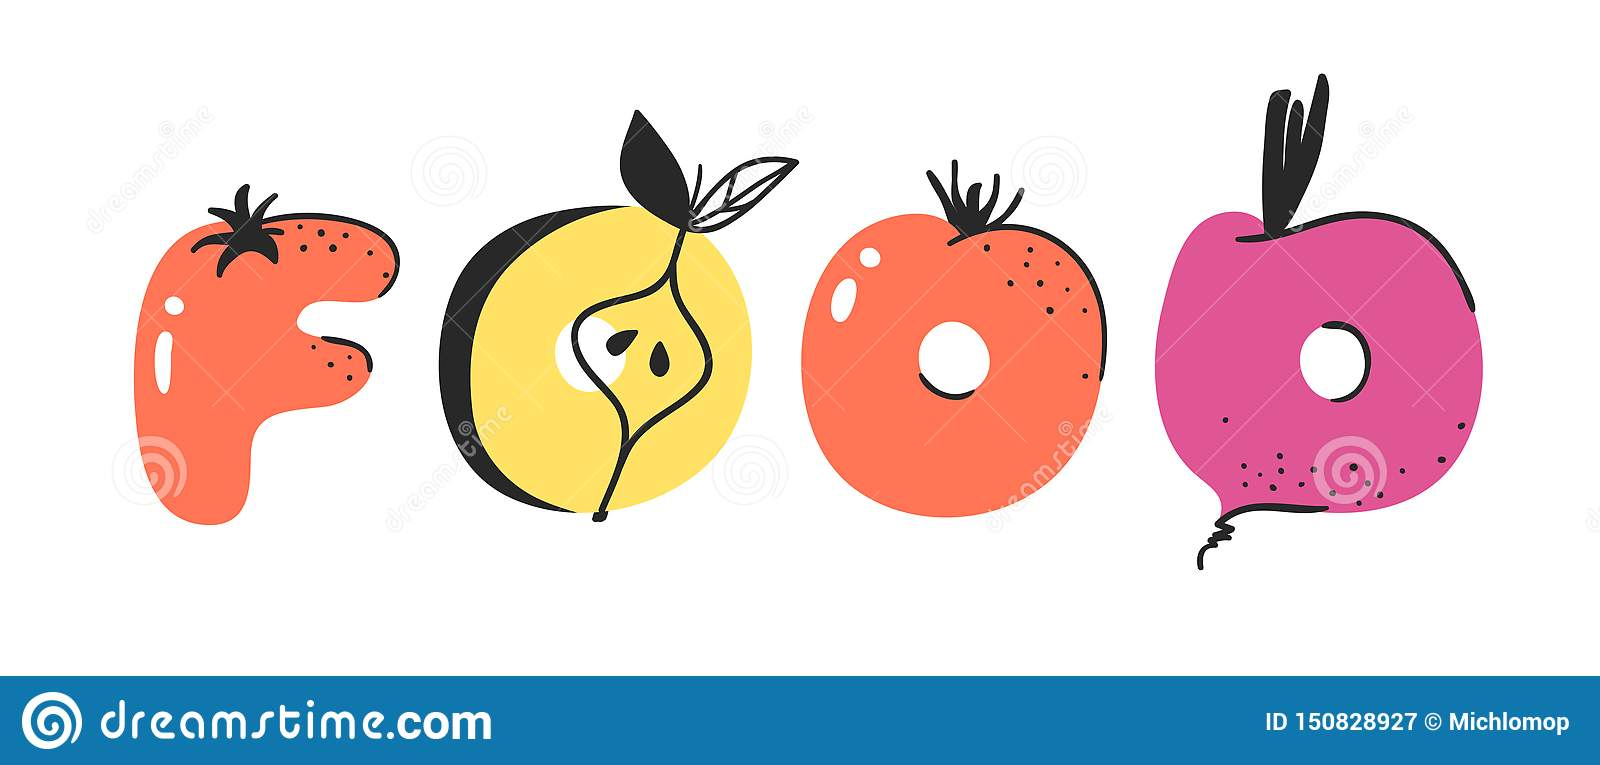 Cartoon Vector Illustration Vegetables And Fruits And Word